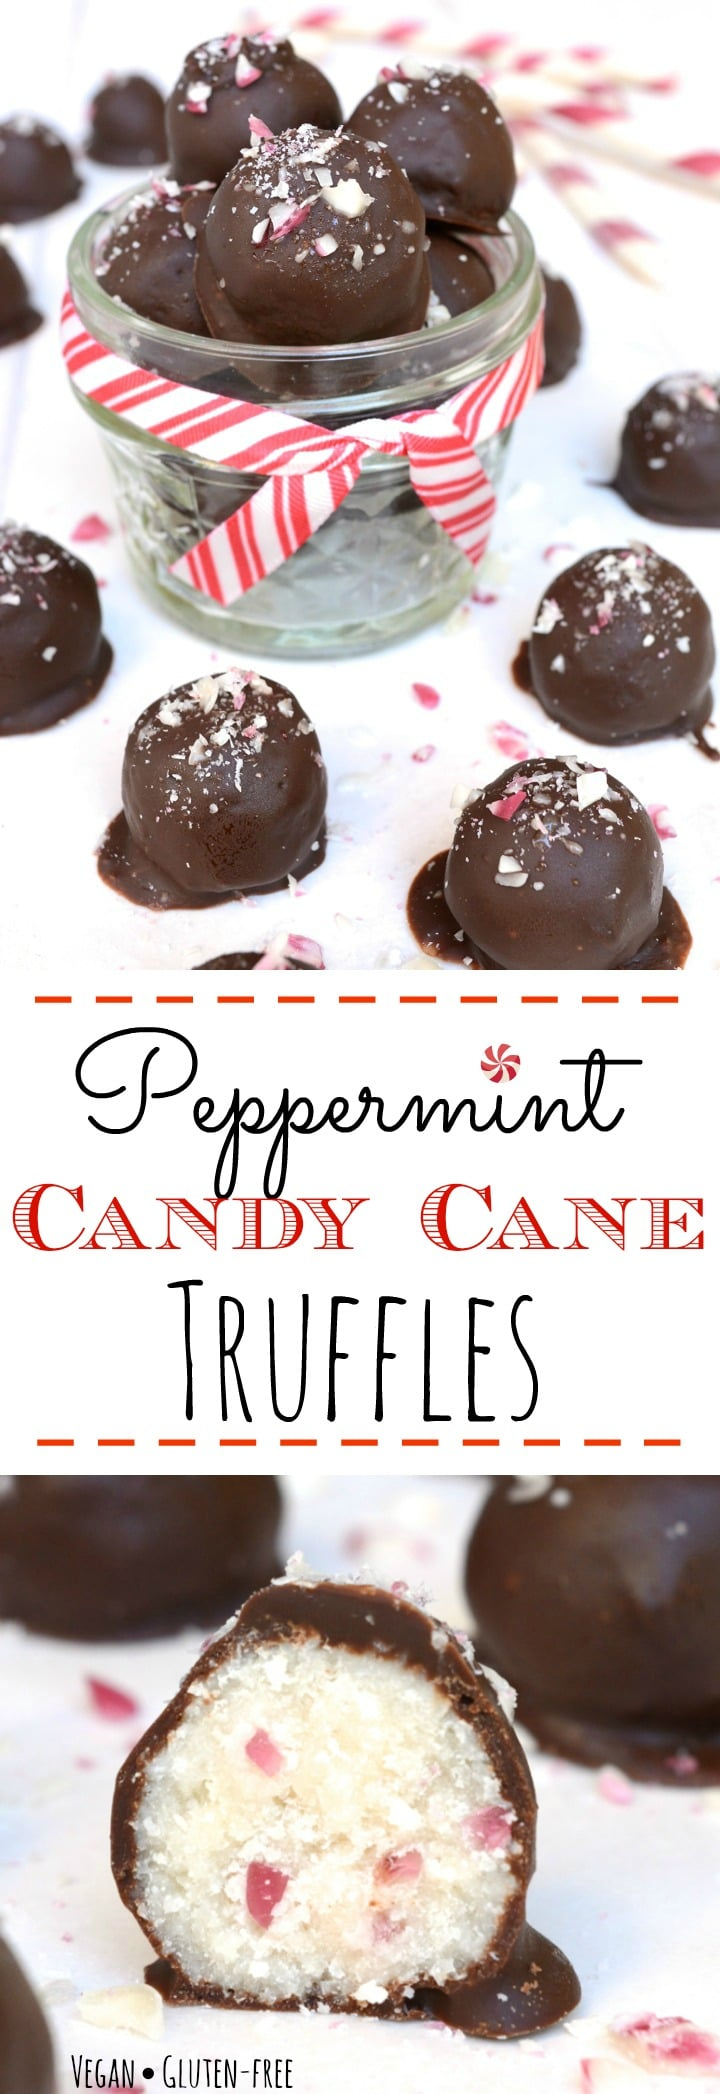 Peppermint Candy Cane Truffles are loaded with an irresistible candy cane crunch. They are a great allergy-friendly holiday treat or a perfect homemade gift. Vegan, gluten-free, nut-free and only 6 simple ingredients to make! You don't have to like the holidays to LOVE these truffles!